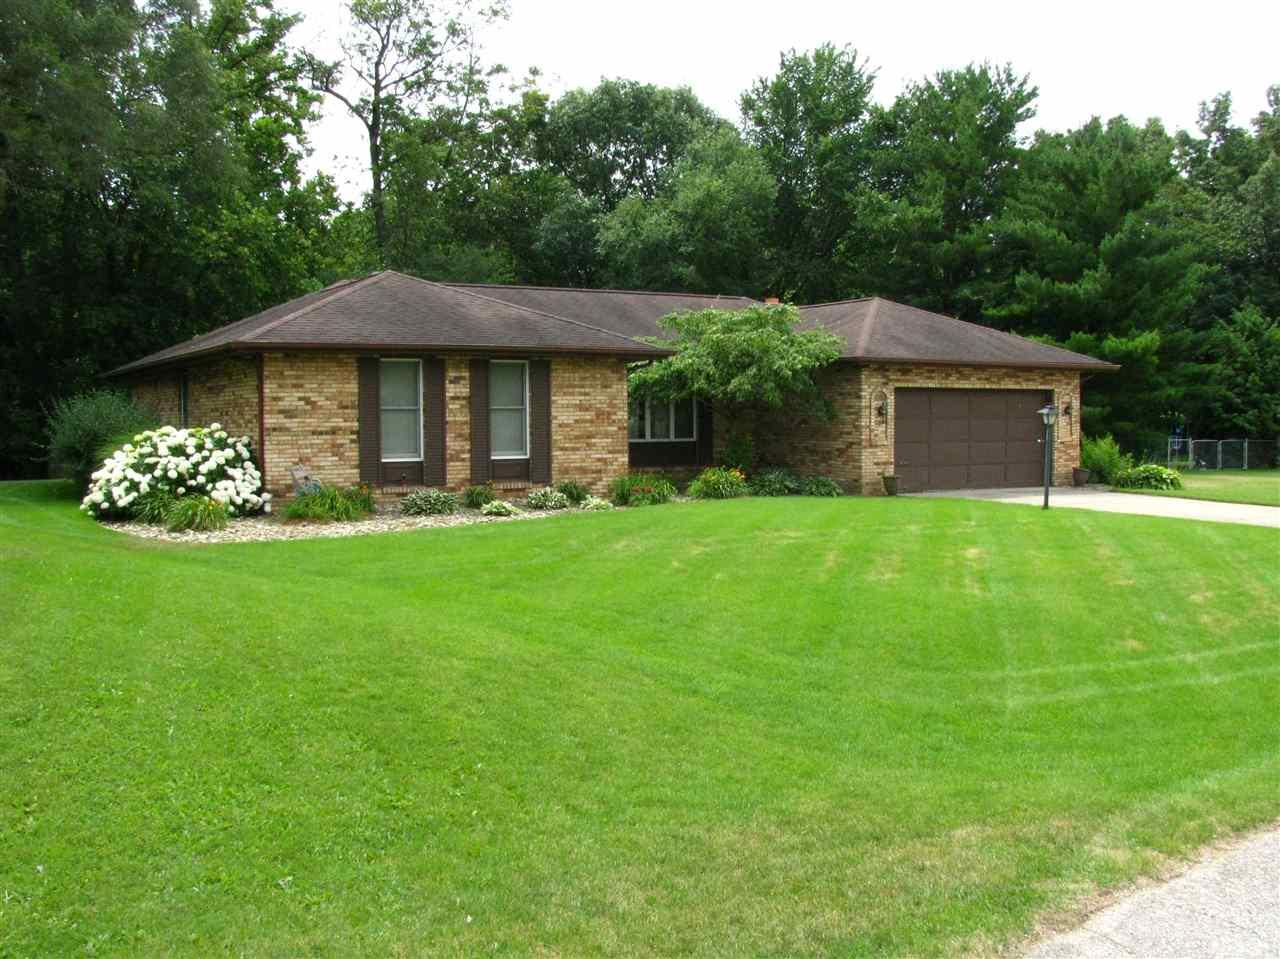 24104 Coral, Elkhart, IN 46516